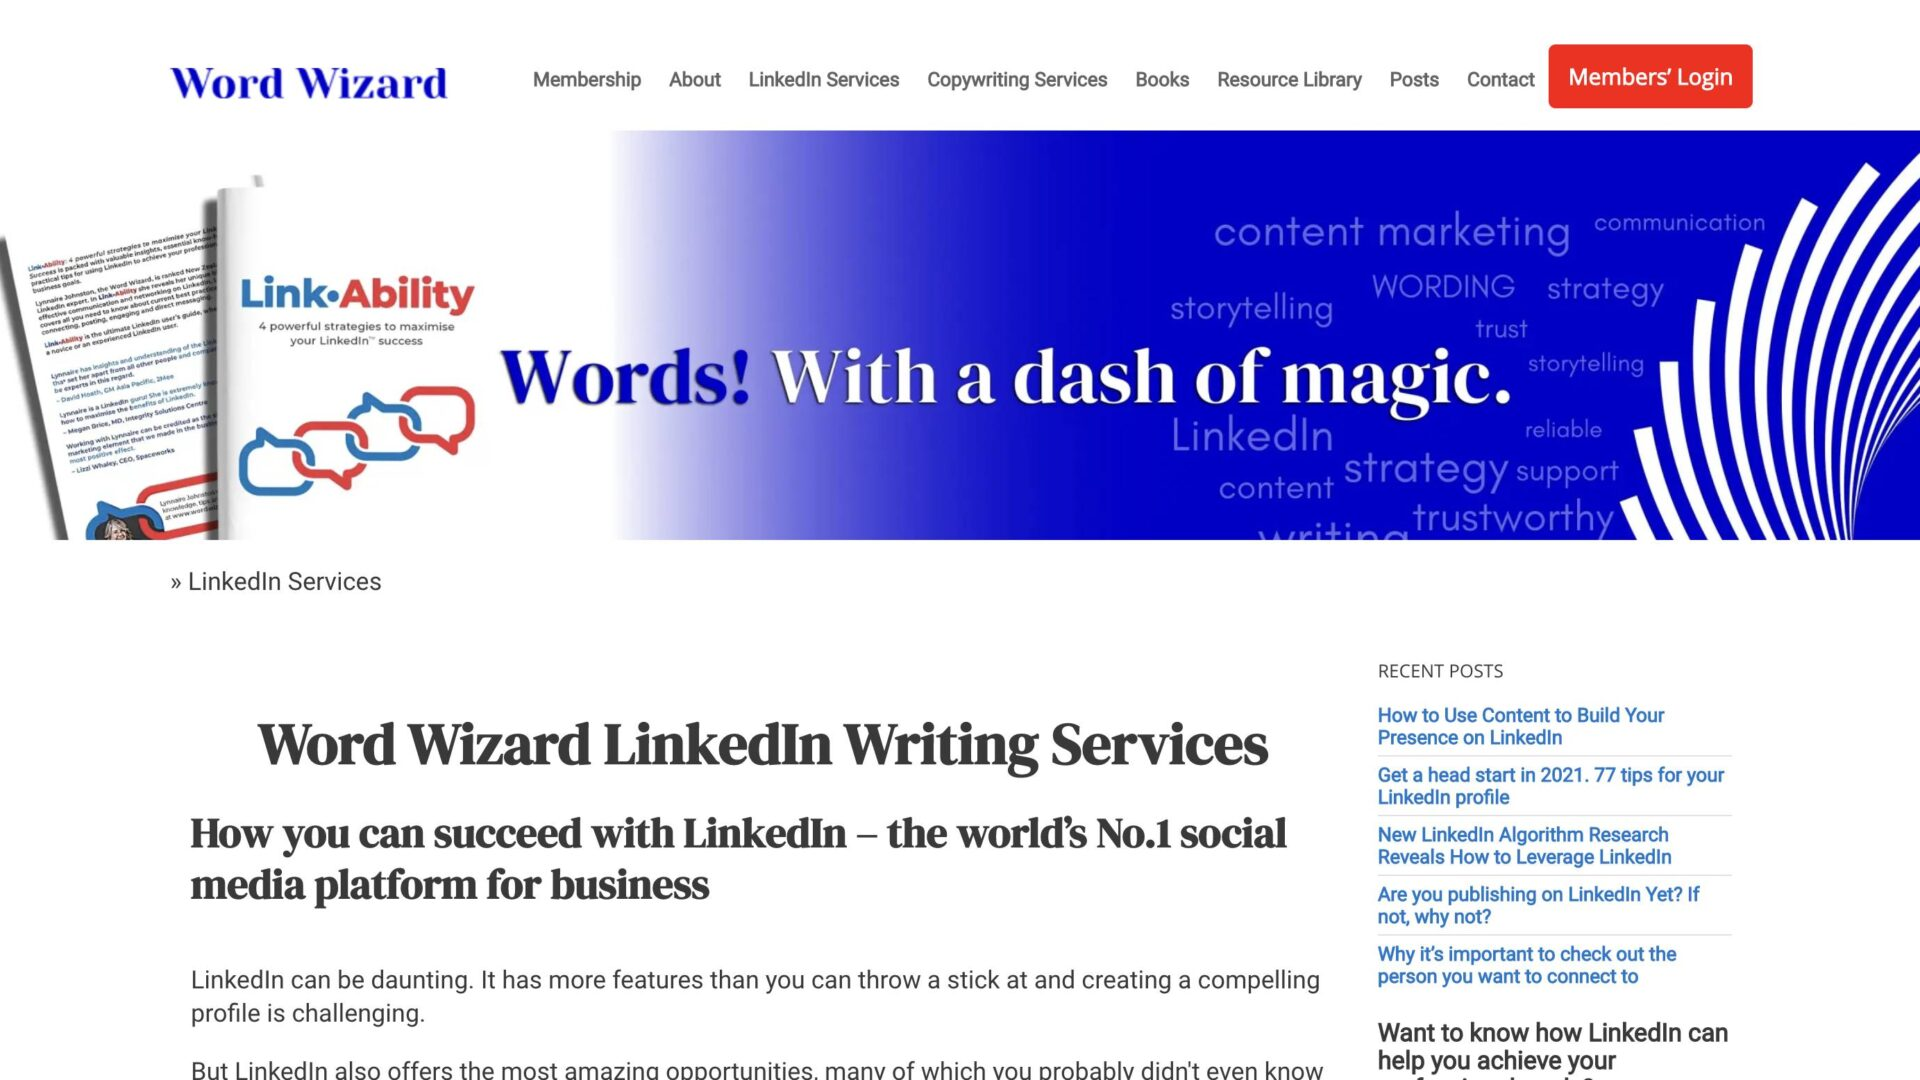 Word Wizard cover